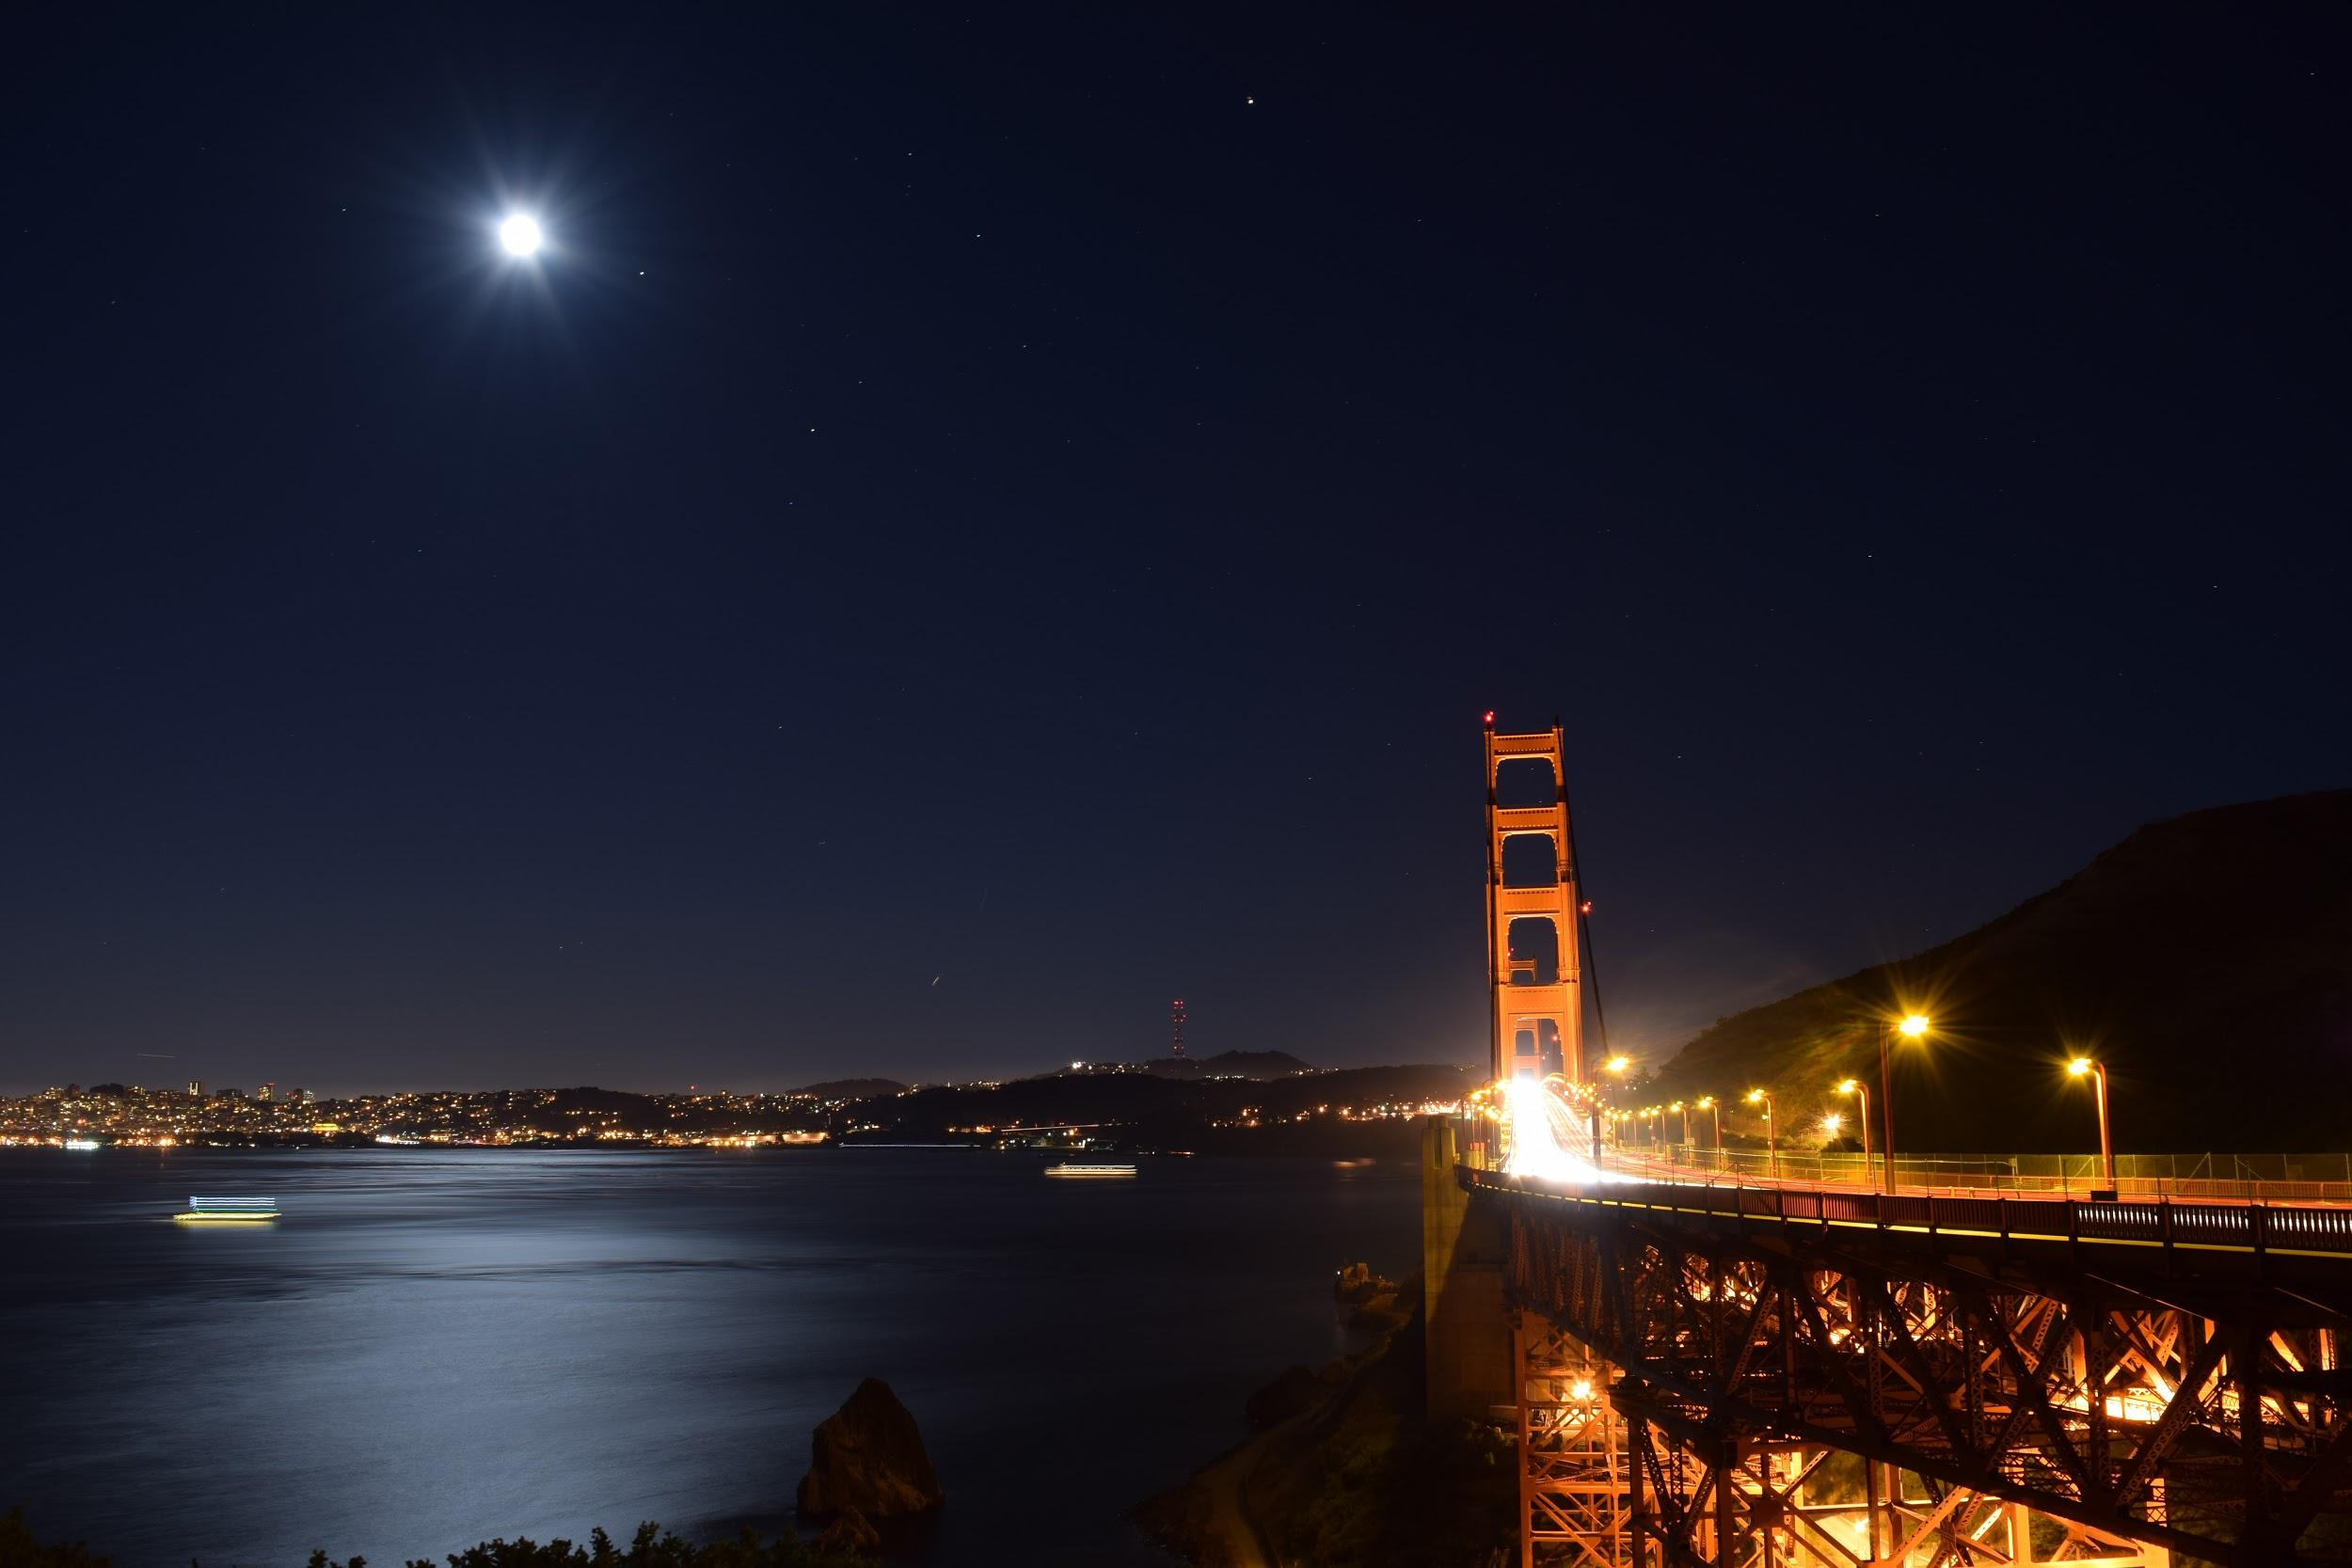 I started off this summer taking a trip to San Francisco with my family. We crossed the Golden Gate Bridge and visited Vista Point at night to get a full view of the city. (ALEXA FONTANILLA)